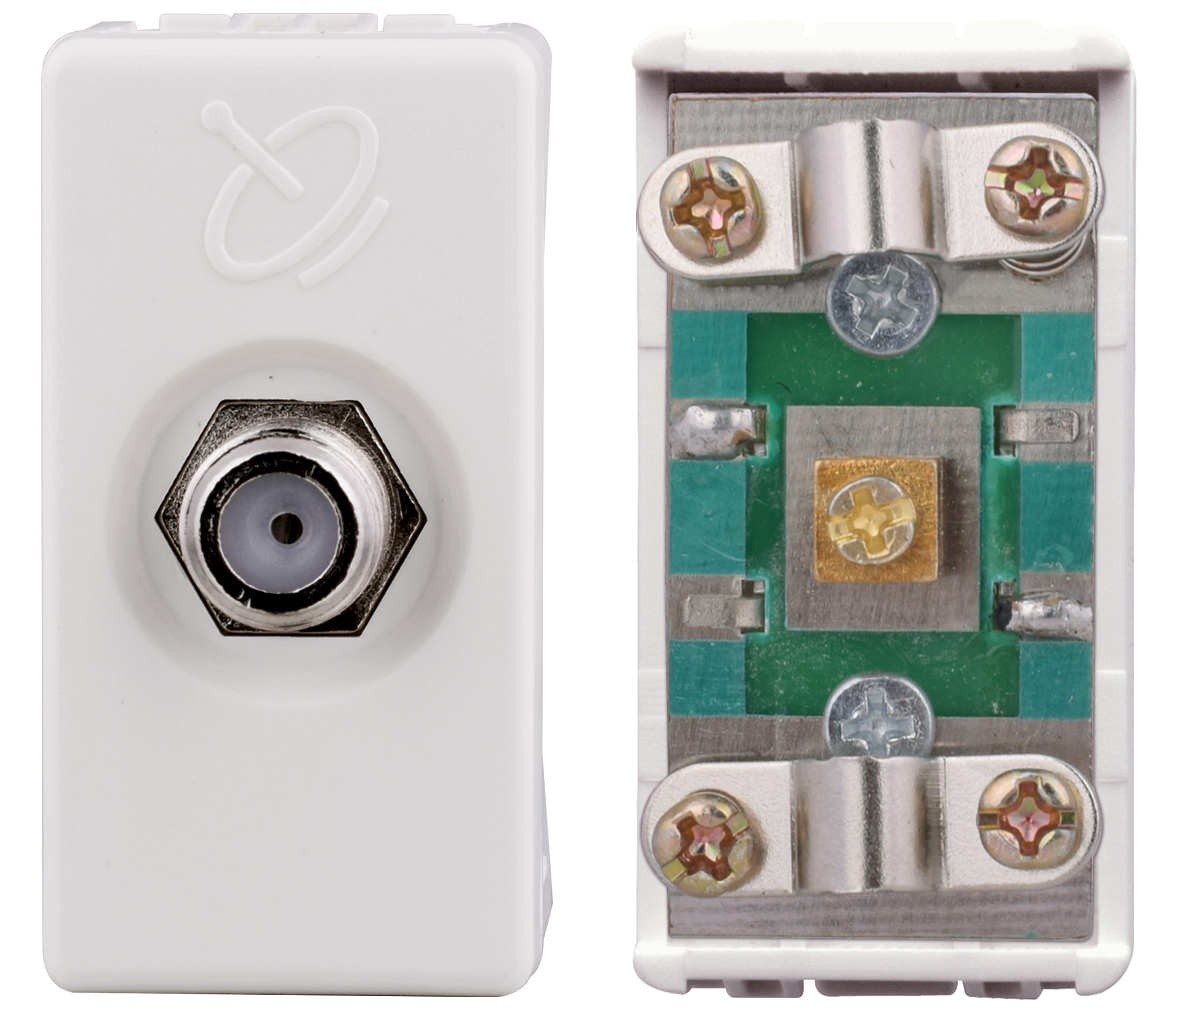 Satellite socket with screw